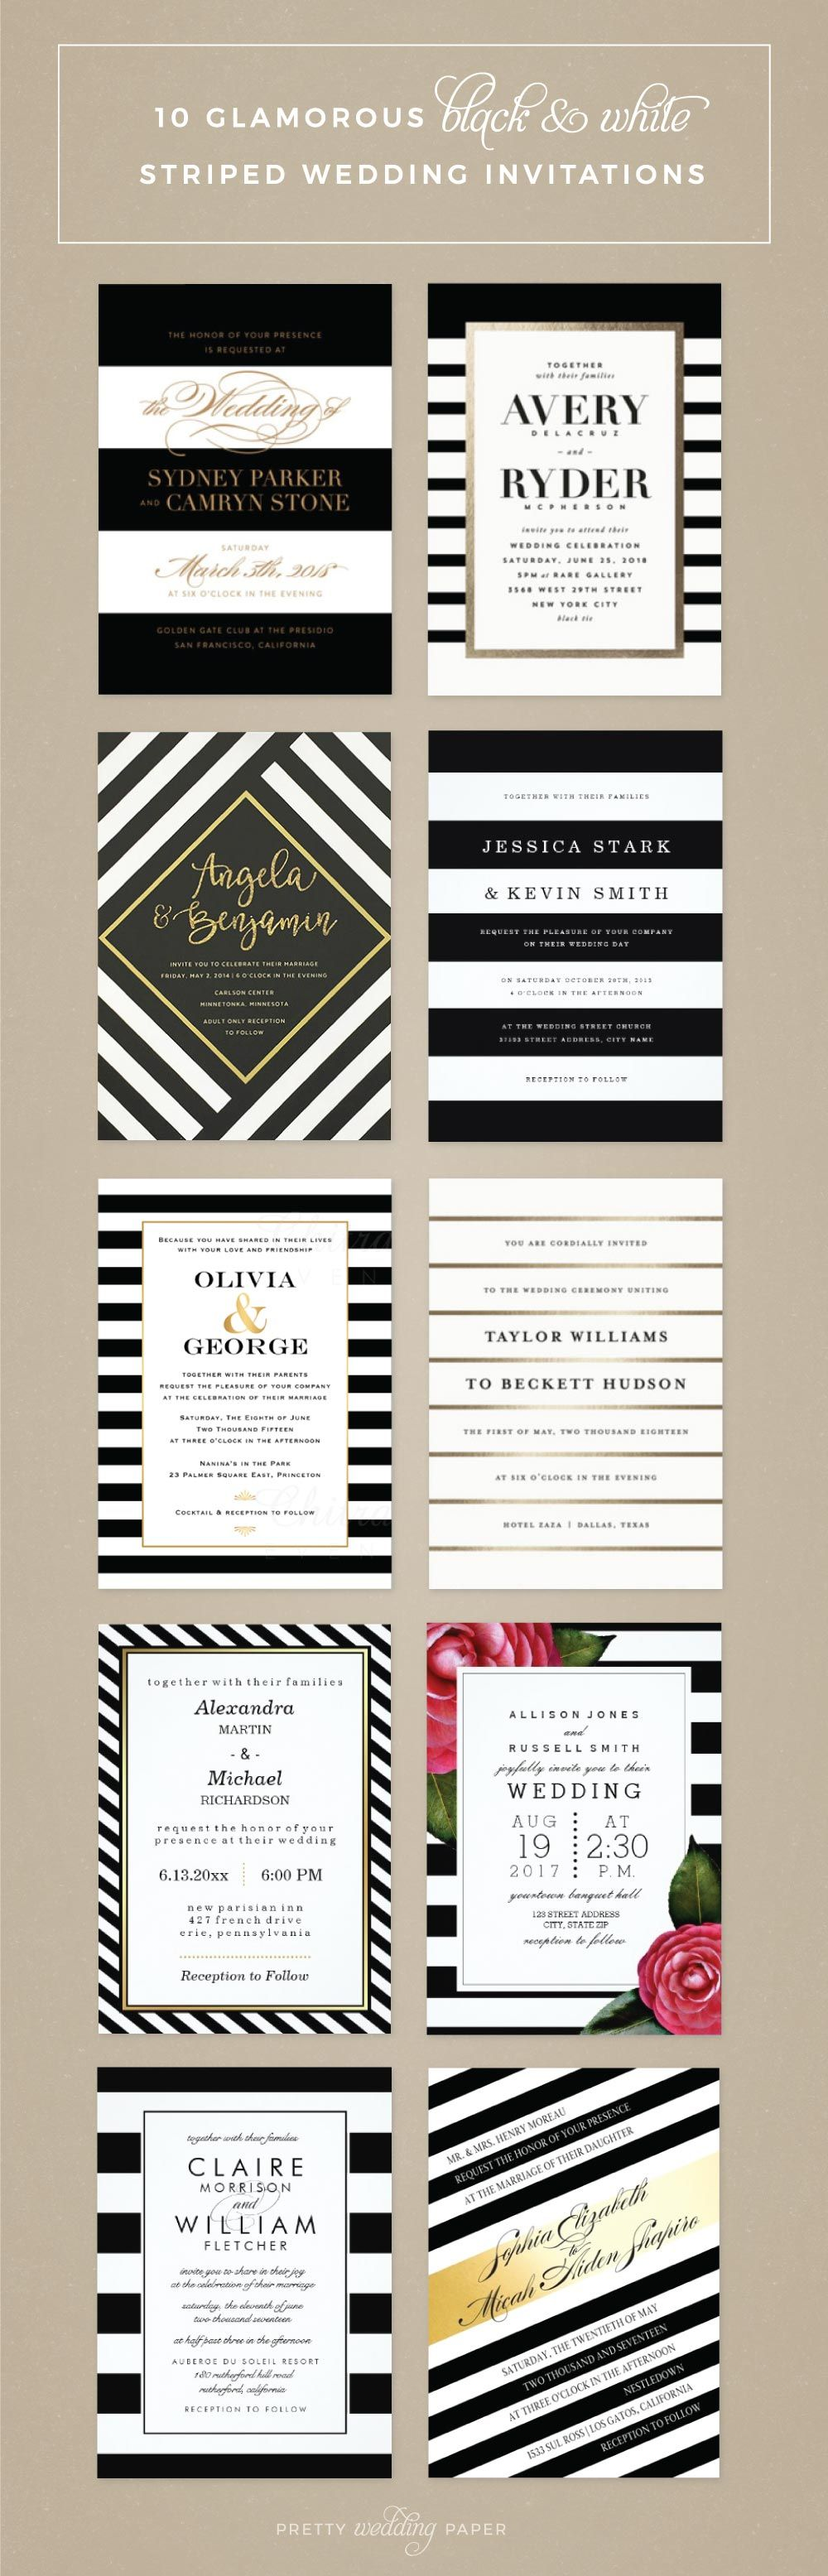 Glamorous Black And White Striped Wedding Invitations Featuring Designs From